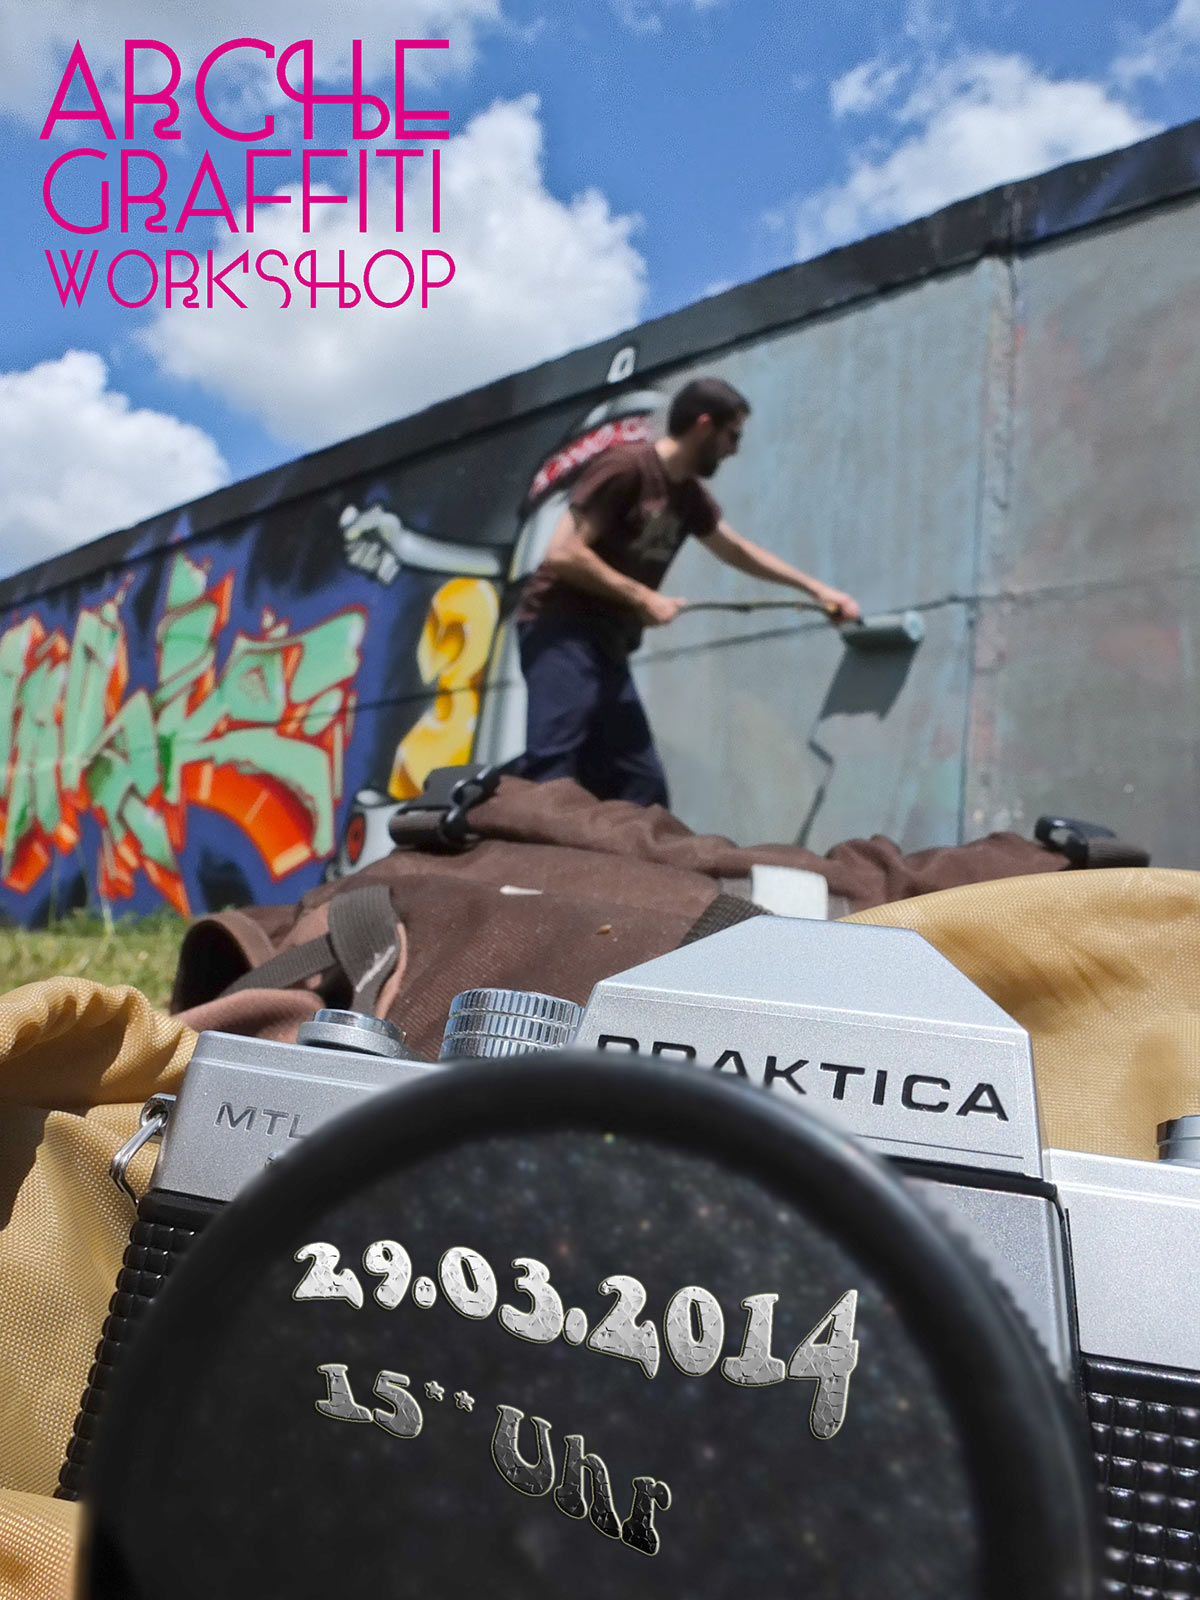 Arche Graffiti Workshop – März 2014